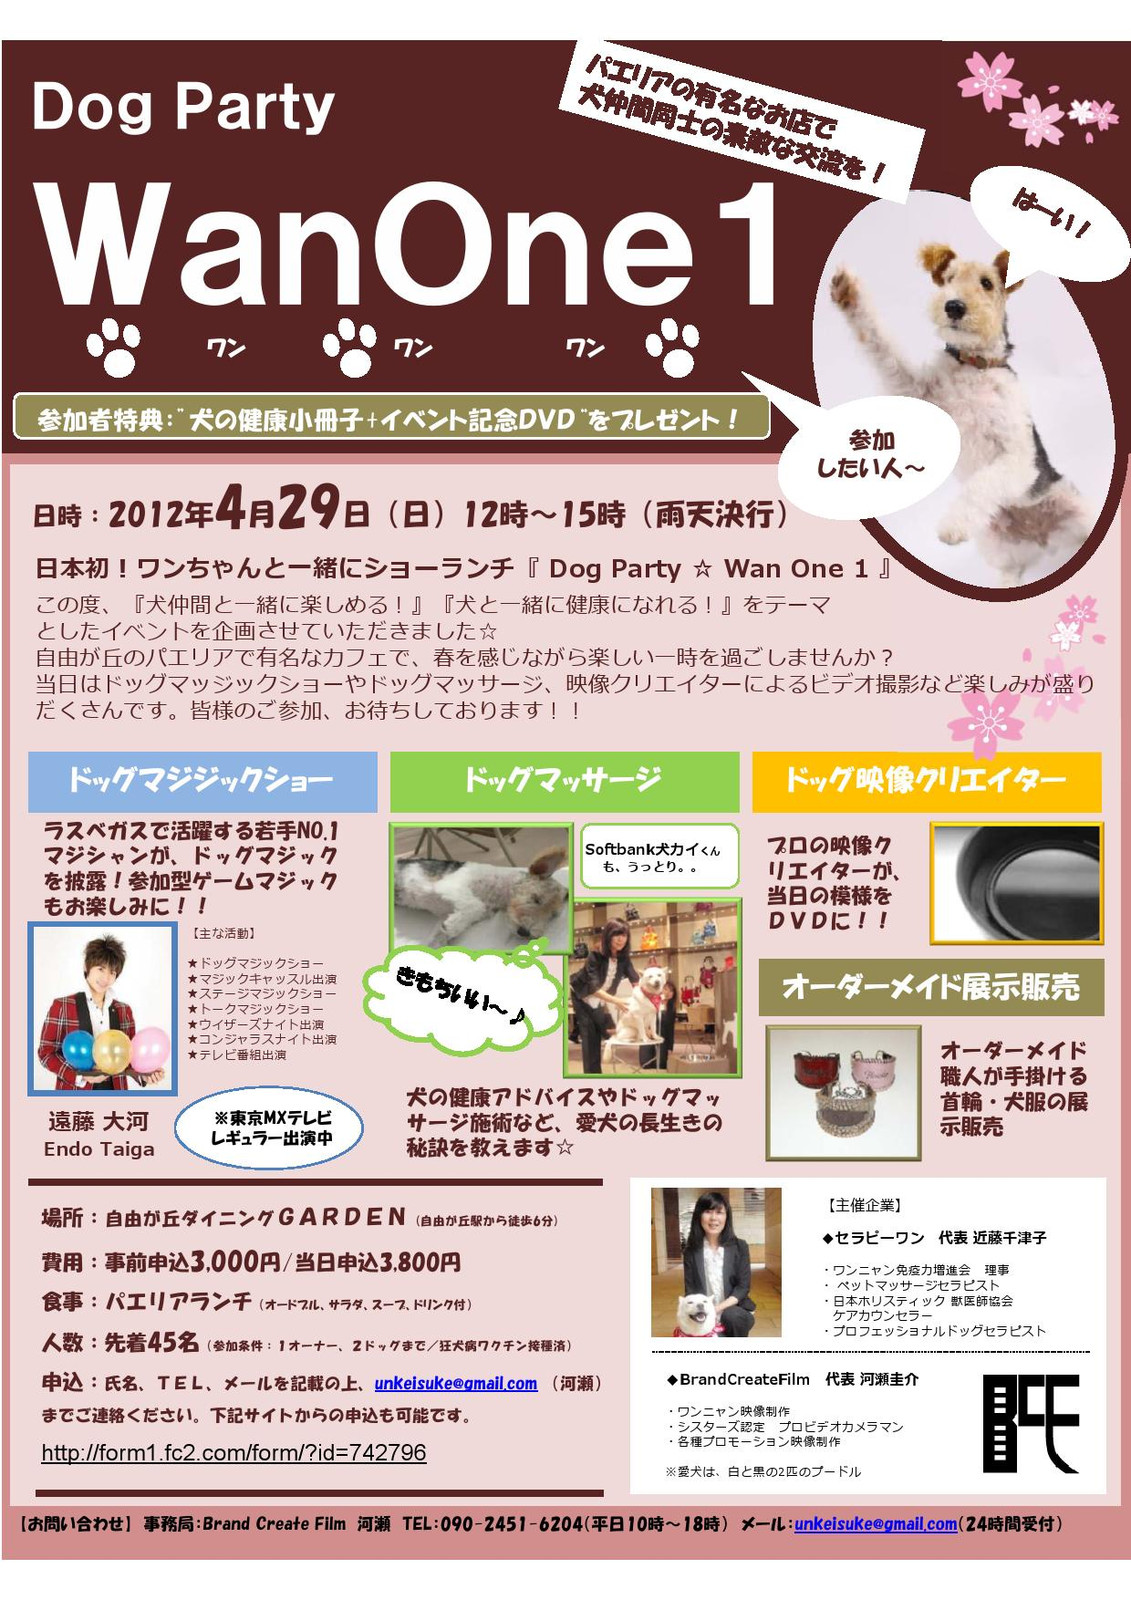 Dogparty_wanone1_vol1pop_2